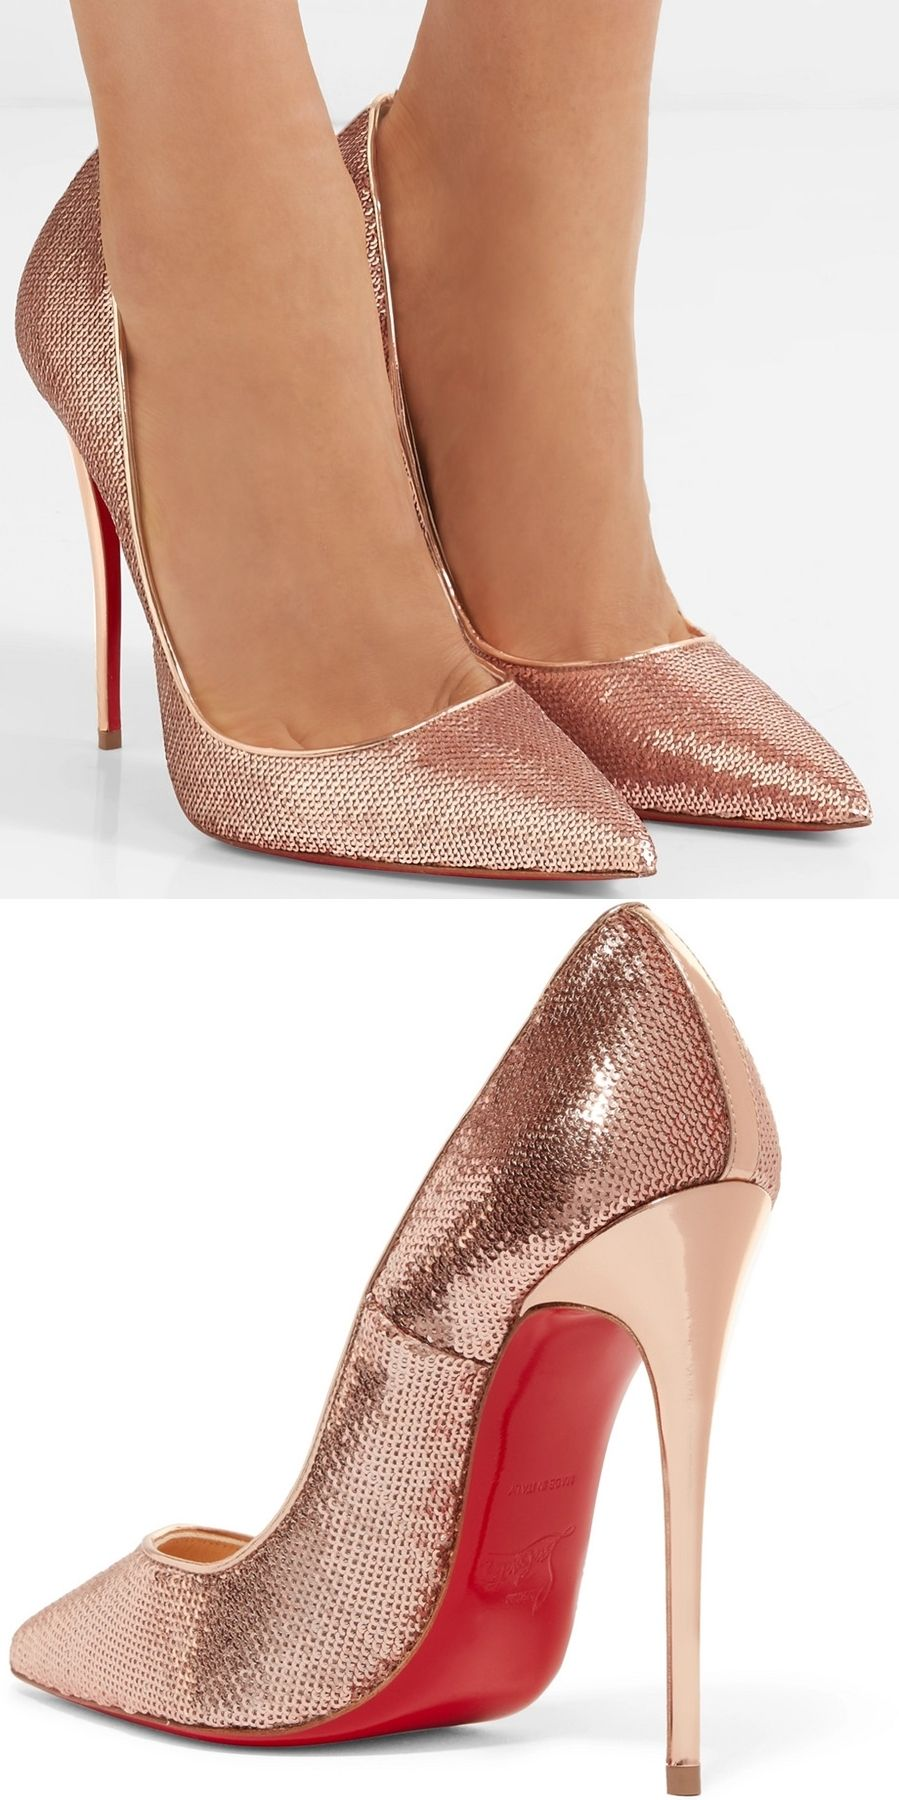 1d0f69d4f2a Christian Louboutin s  So Kate  pumps are covered in rose gold sequins that  are intricately placed so they overlap and shimmer like mermaid scales.